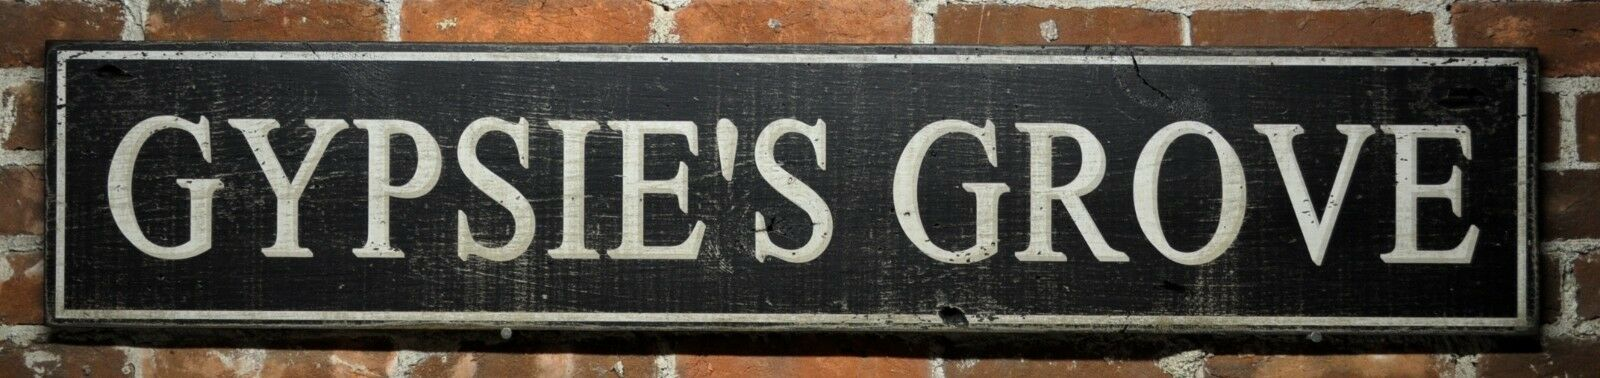 Gypsies Grove Wood Sign - Rustic Hand Made Vintage Wooden Sign